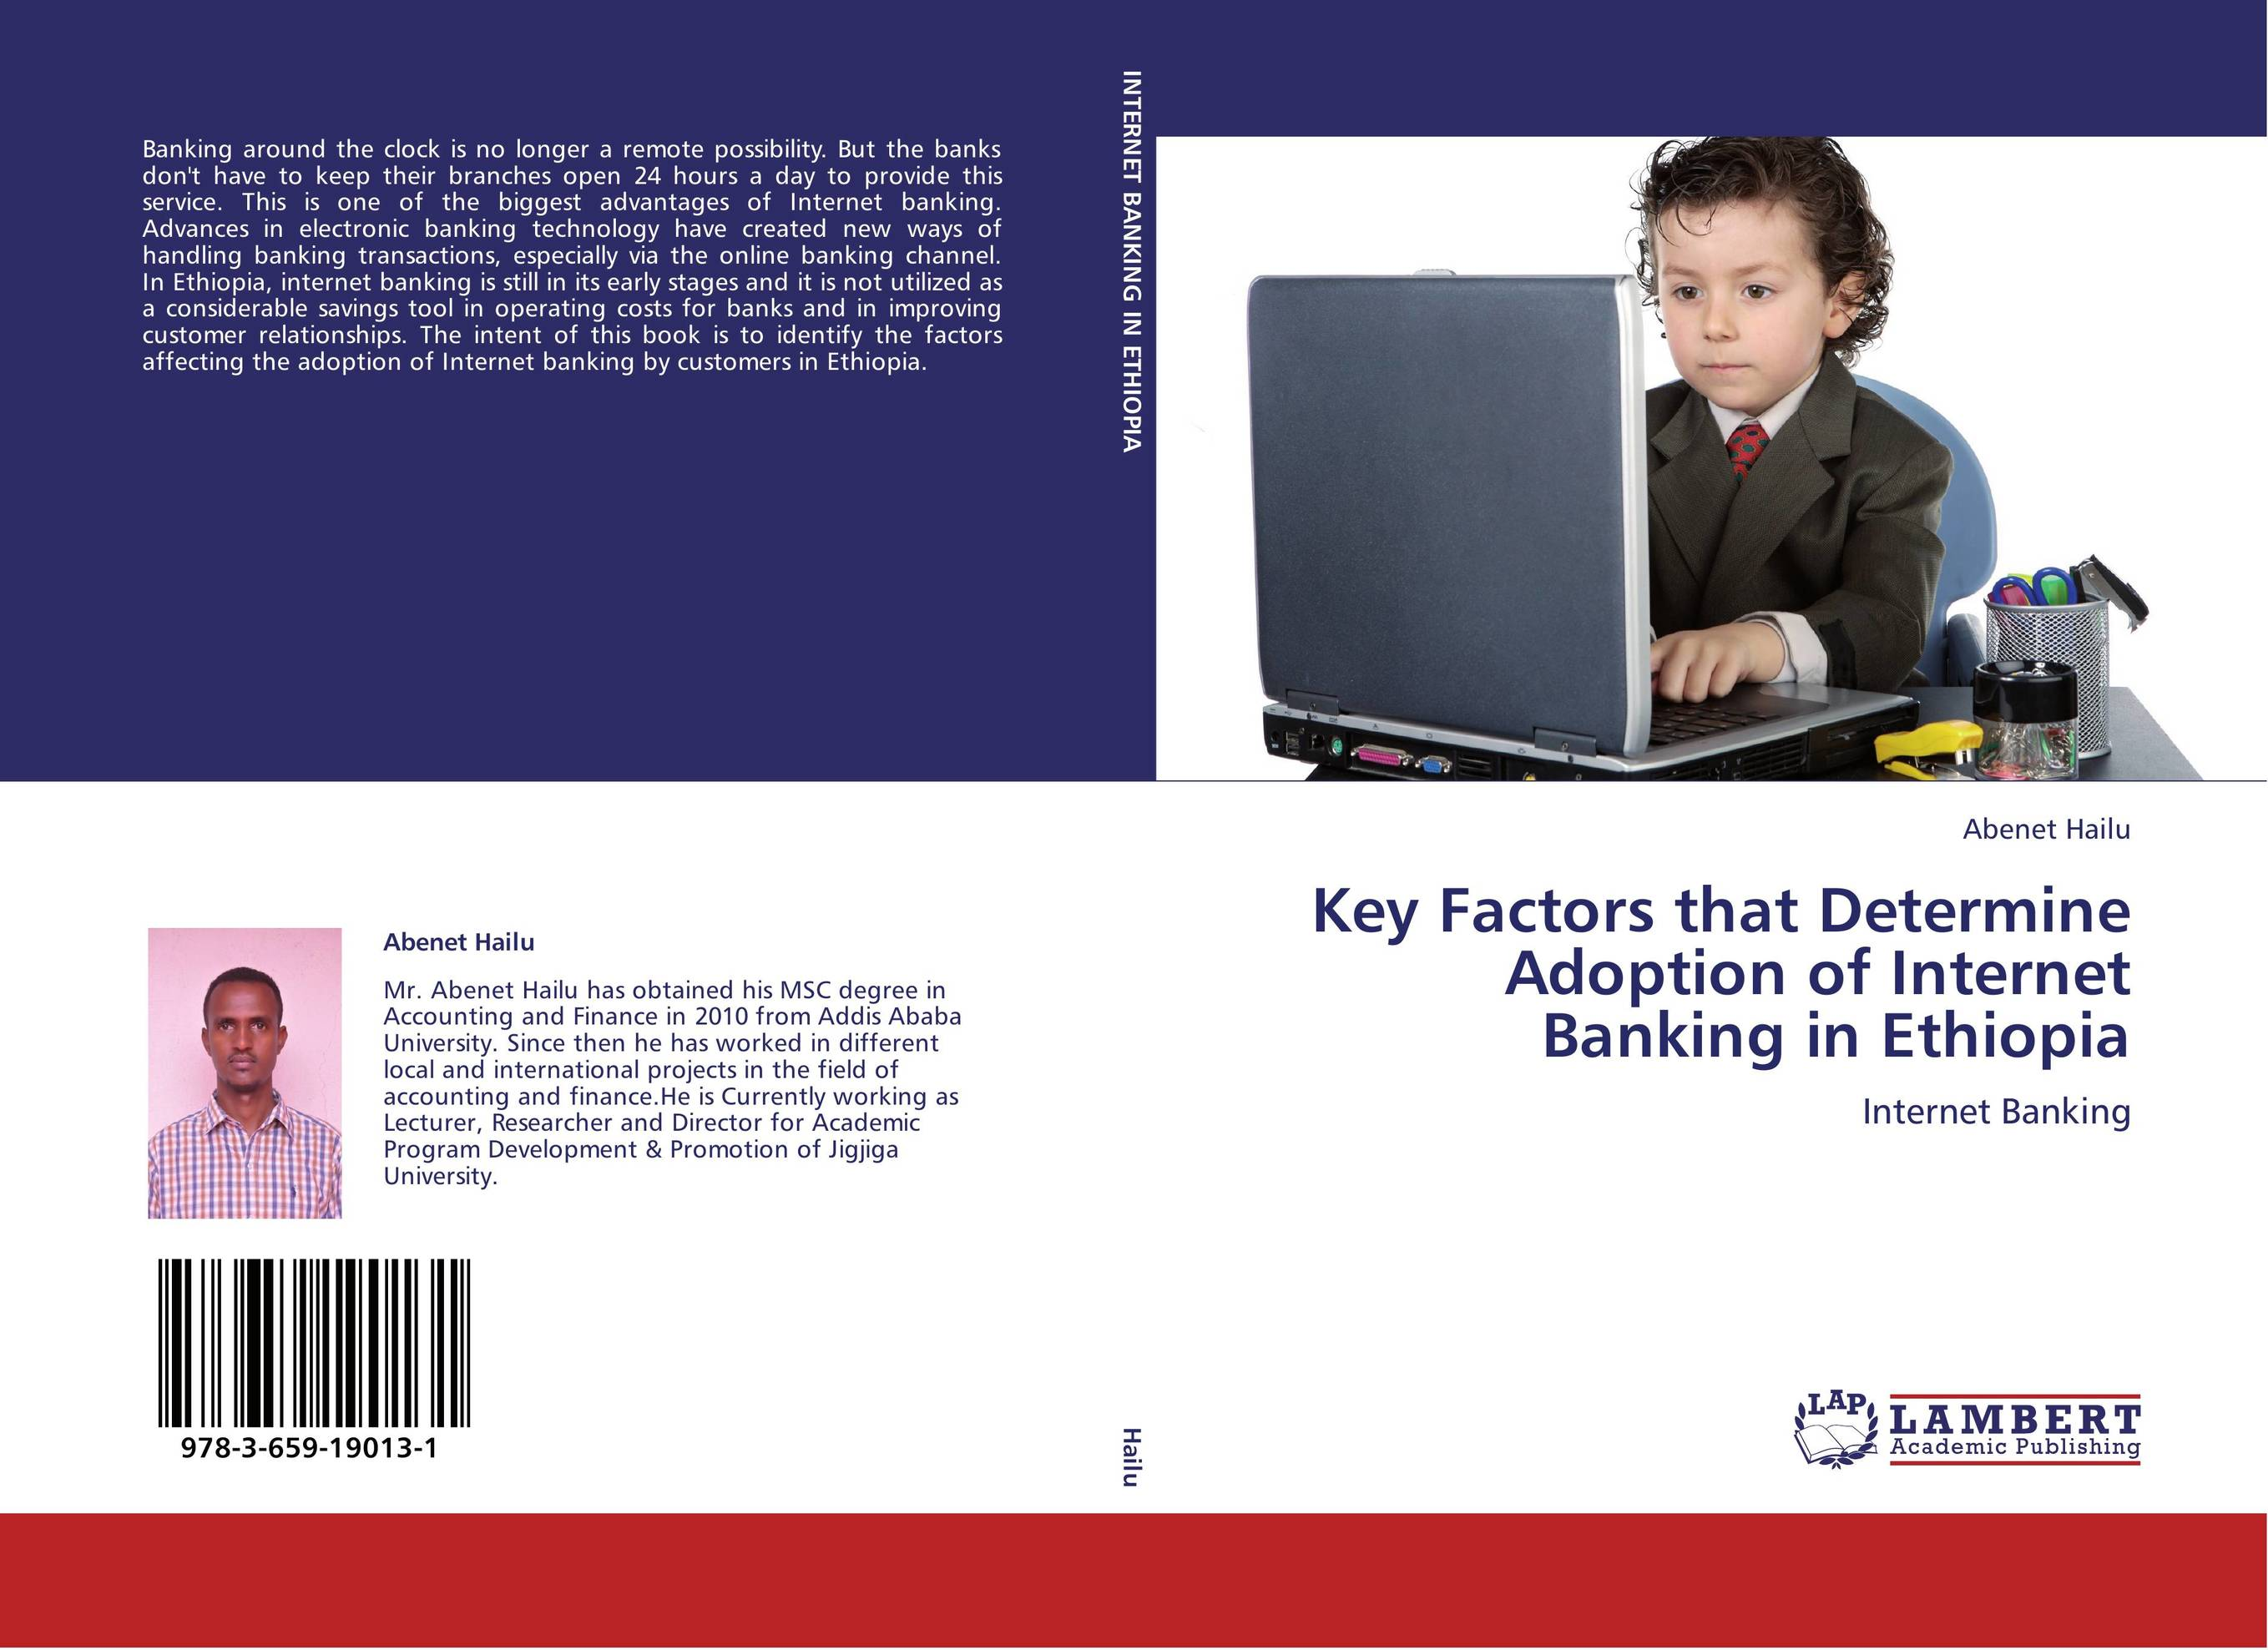 factor influencing internet banking adoption students in malaysia The factors that influence the usage of social media as a marketing tool among the small medium enterprises  factors influencing social media adoption - tam / / /  pinterest and google+ adoption among university students and the study found that ease of use has a positive influence on social media adoption similarly with the study.